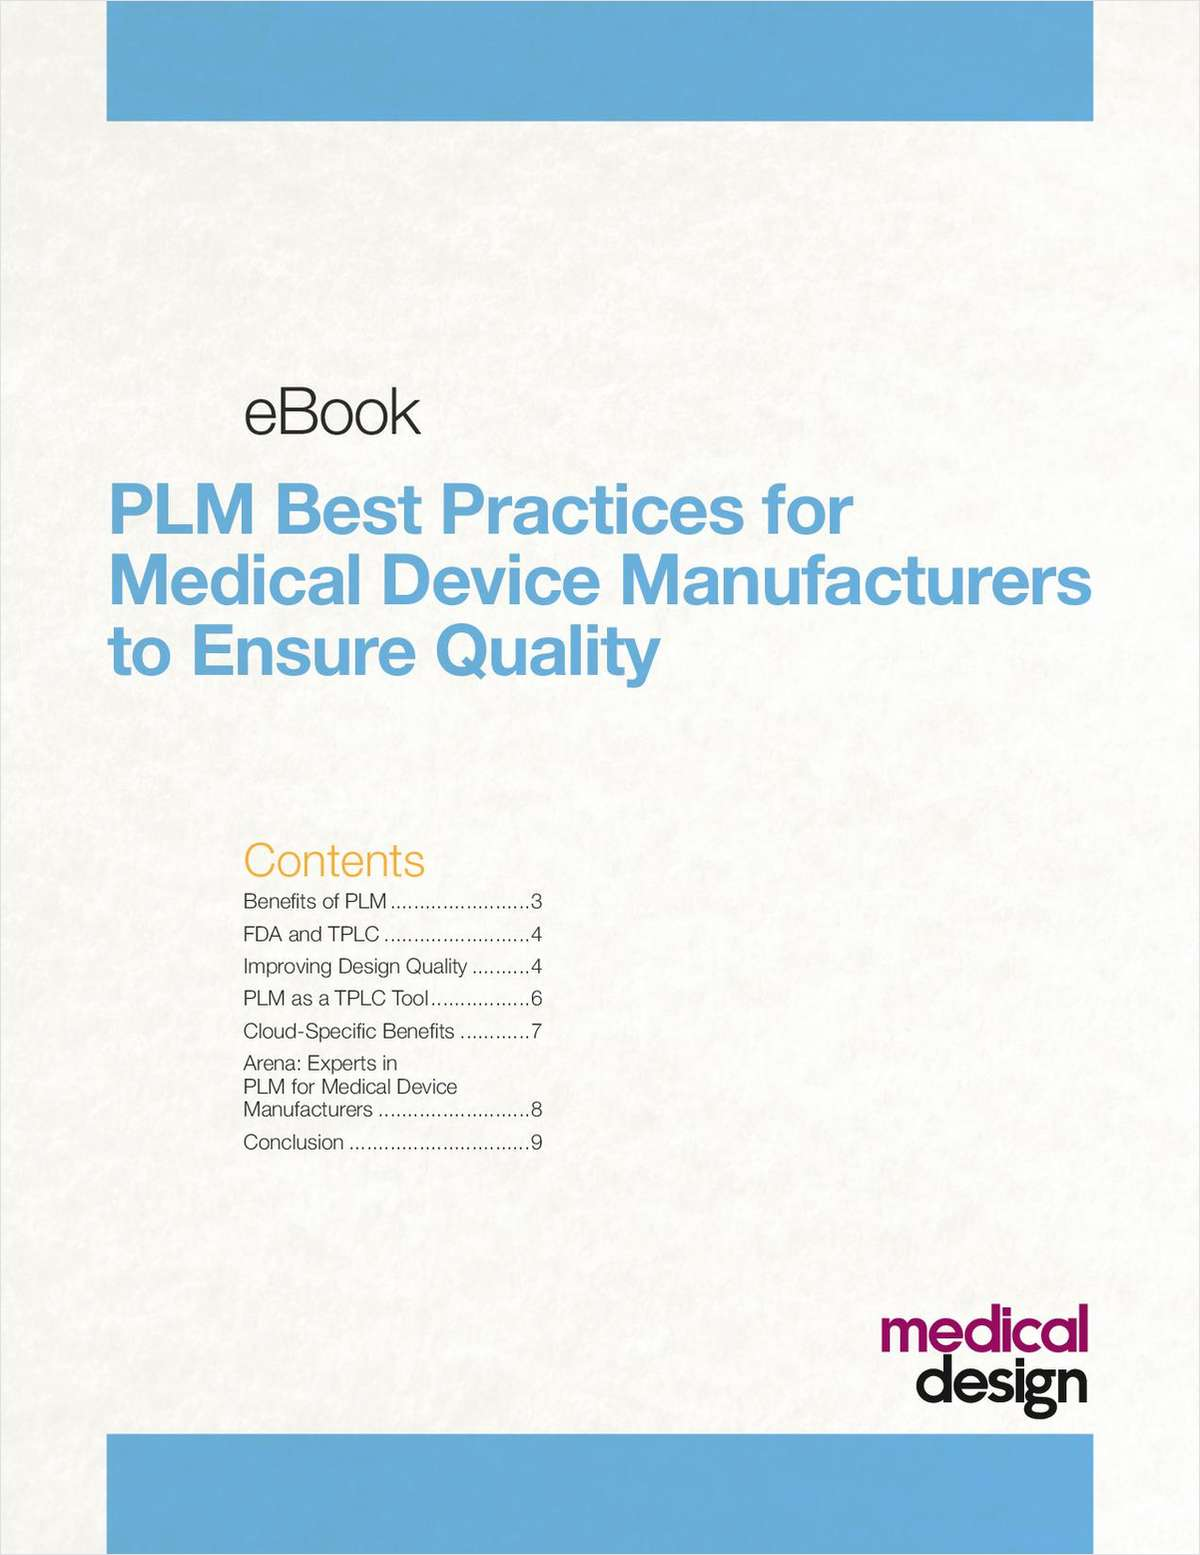 eBook: PLM Best Practices for Medical Device Manufacturers to Ensure Quality